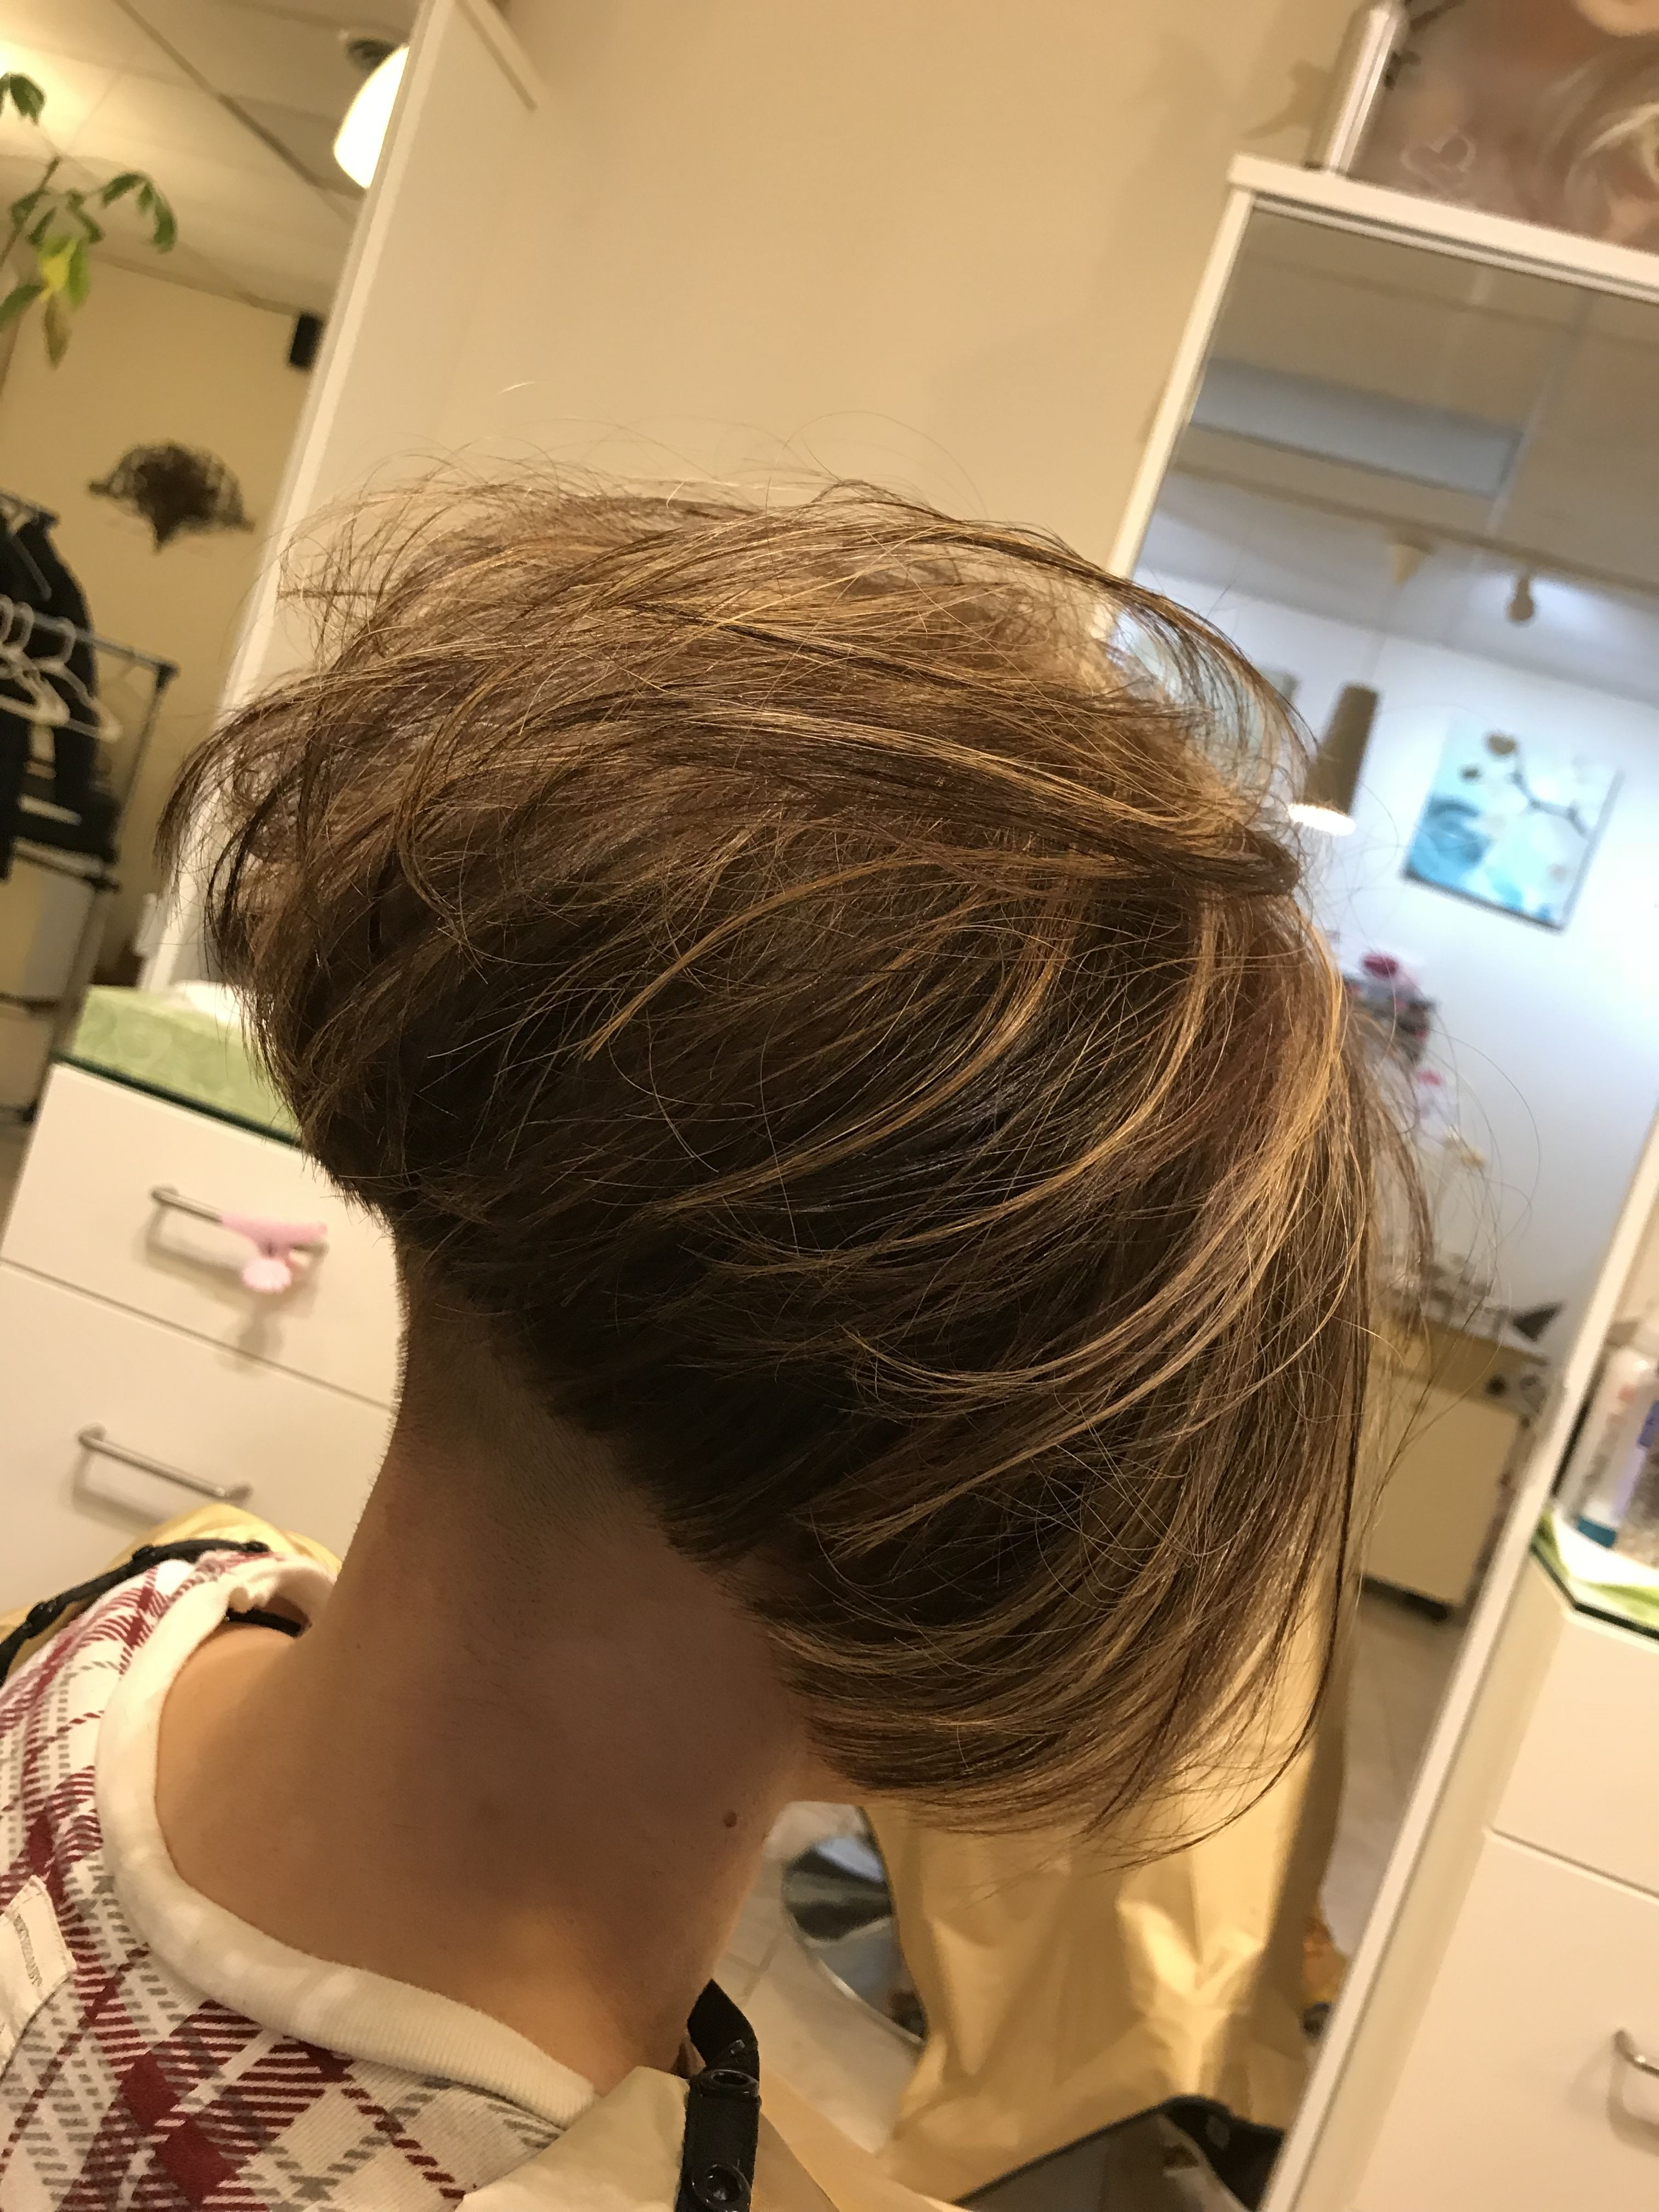 short layered haircut 14284 back view assym bobs t bob hairstyles bob and 9806 | 609ef1a5a9806a865a67e43b1496427f